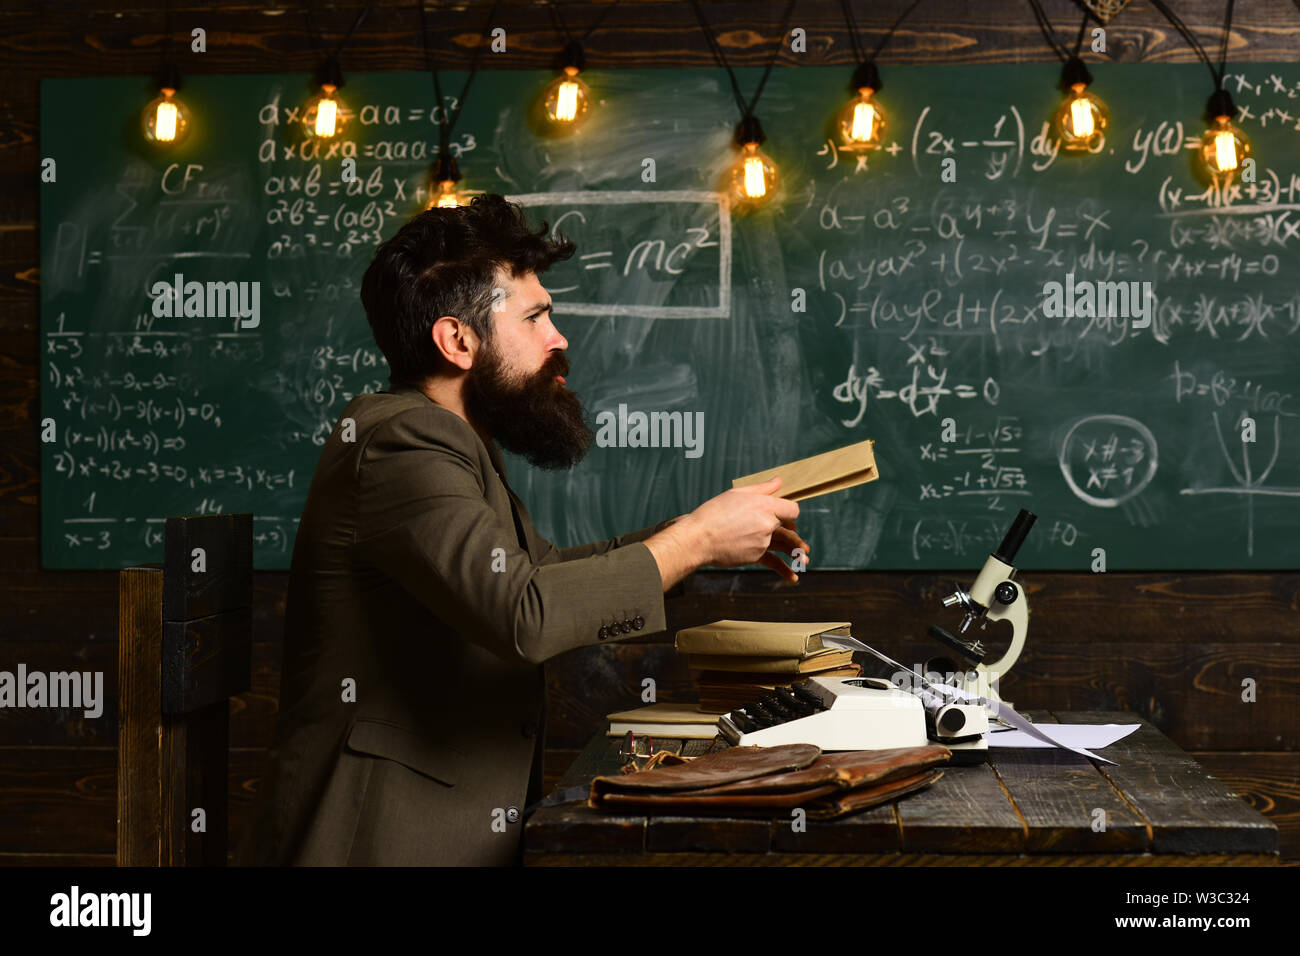 Teacher is sitting at the table in classroom, Teachers who become great or master teachers seek out the help they need, People learning education and - Stock Image